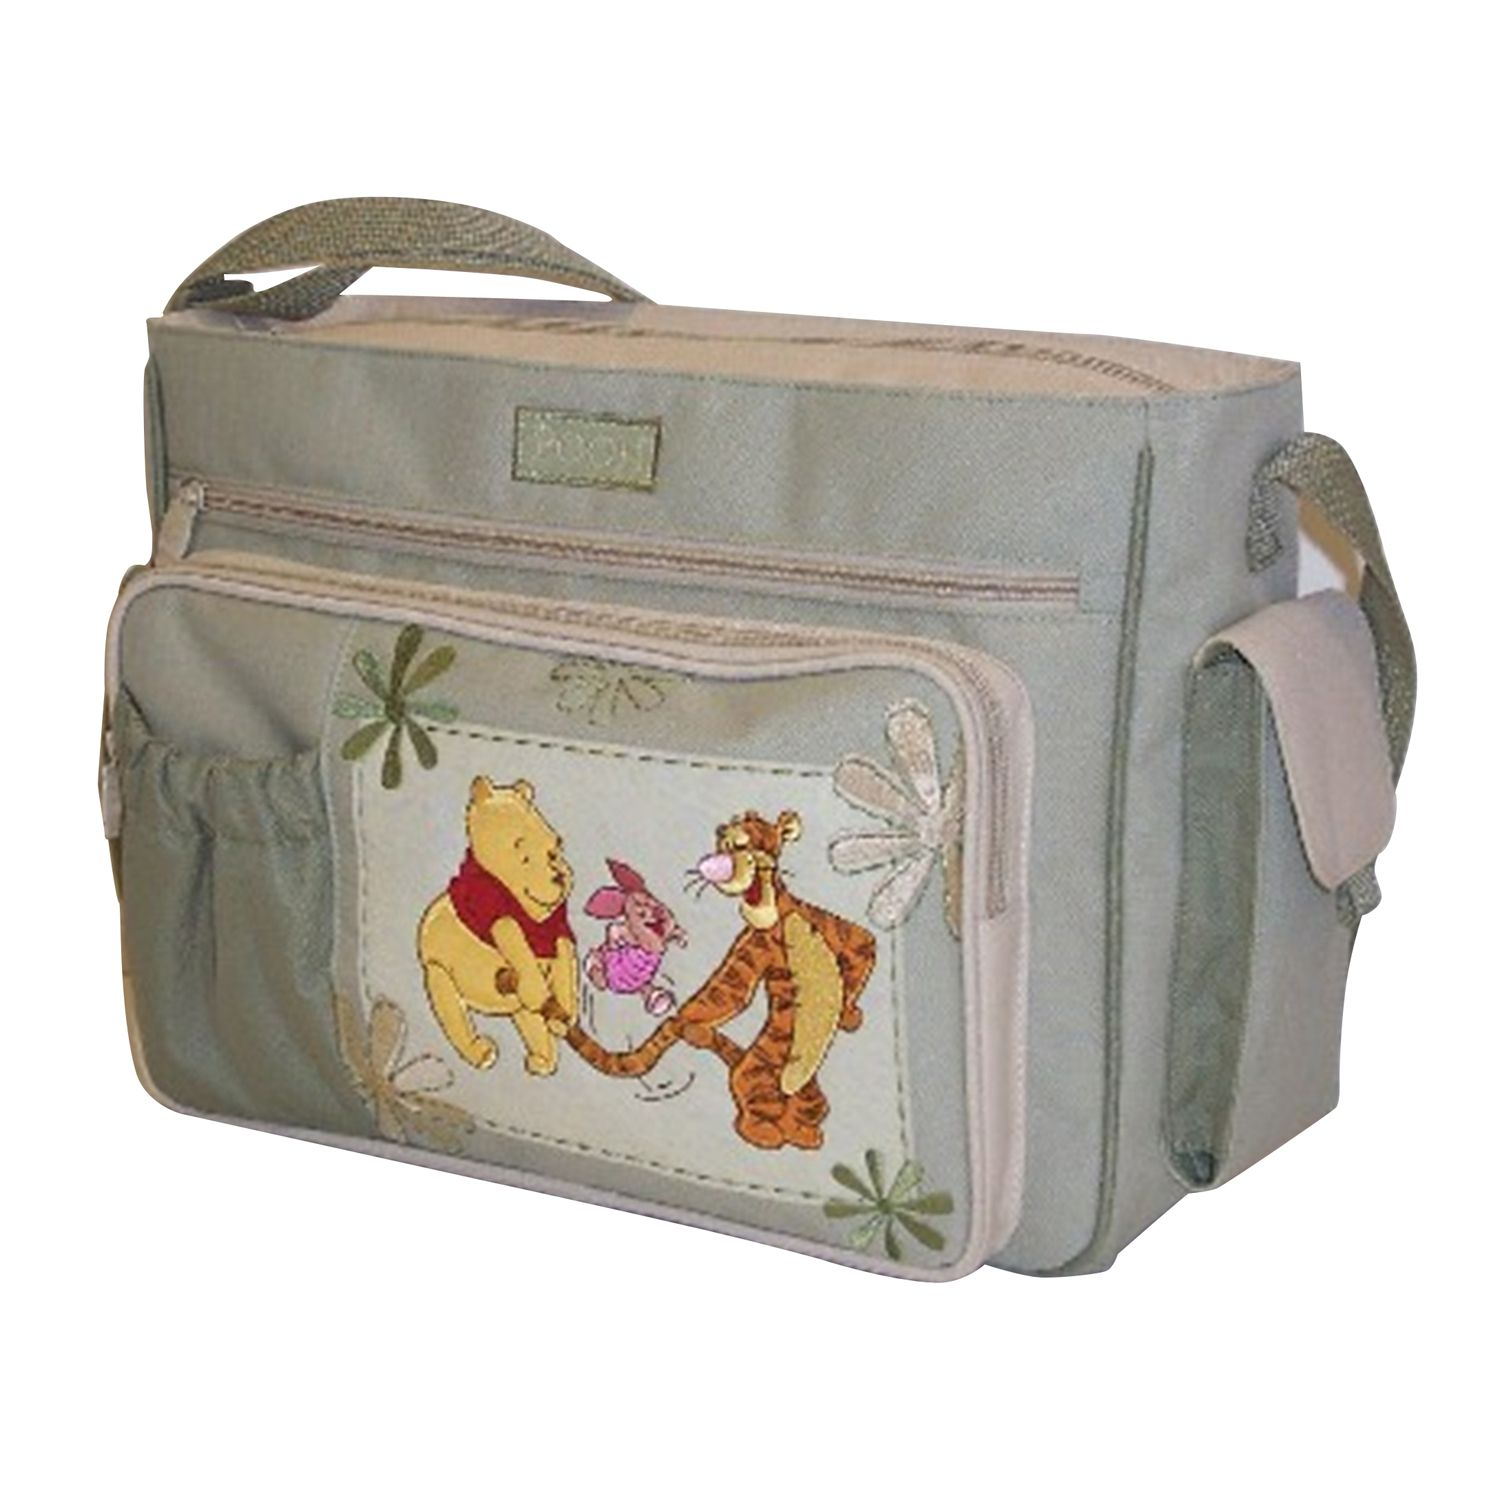 Winnie the Pooh Baby Diaper Bags